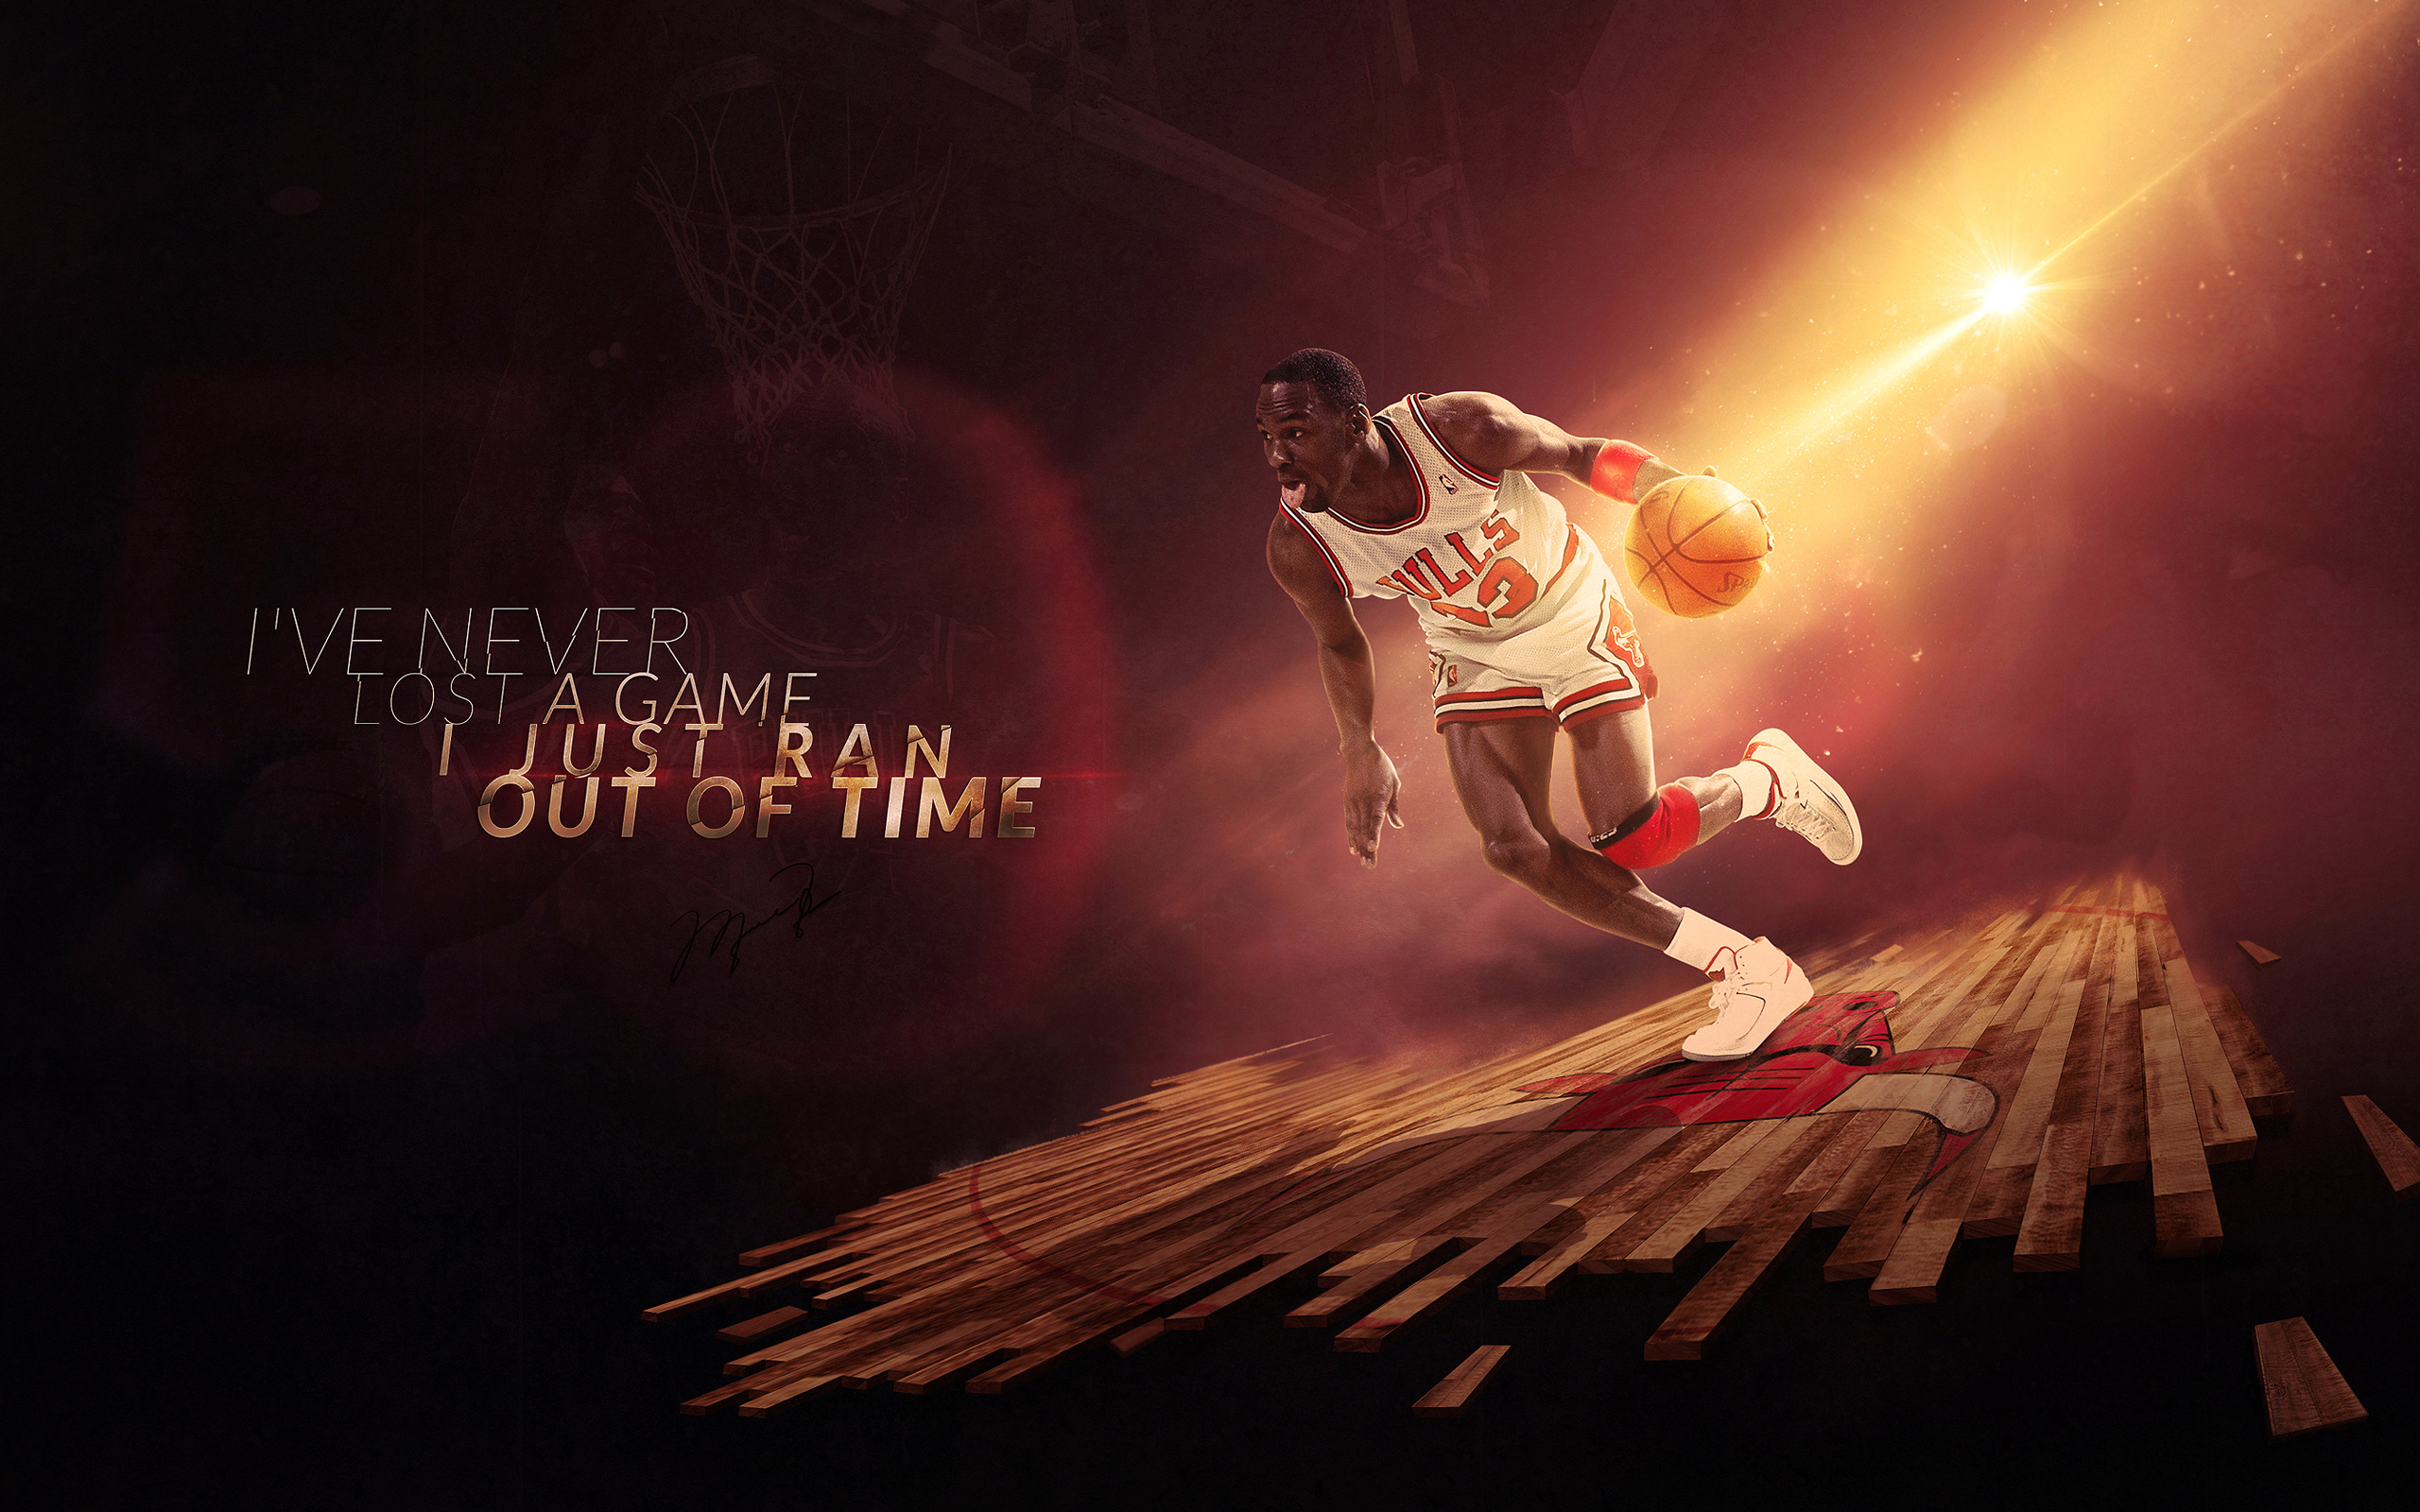 Michael Jordan Hd Wallpaper Background Image 2560x1600